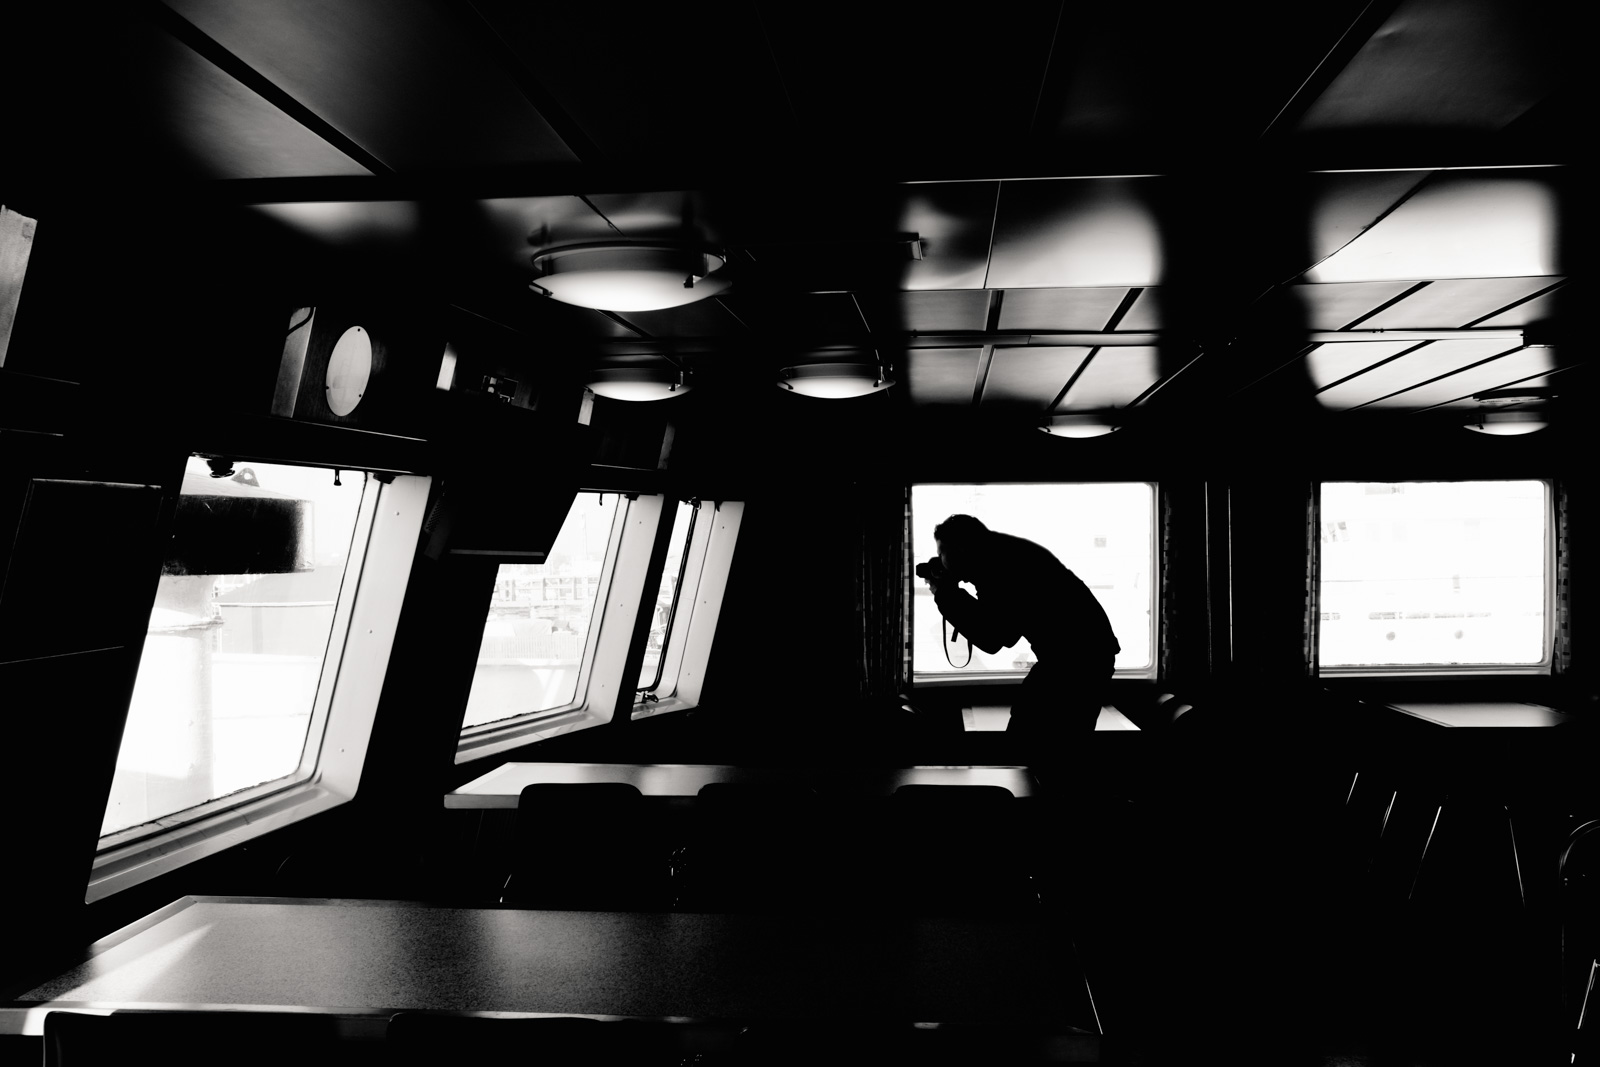 On the ferry from Faaborg to Ærø, Denmark. October 2016.